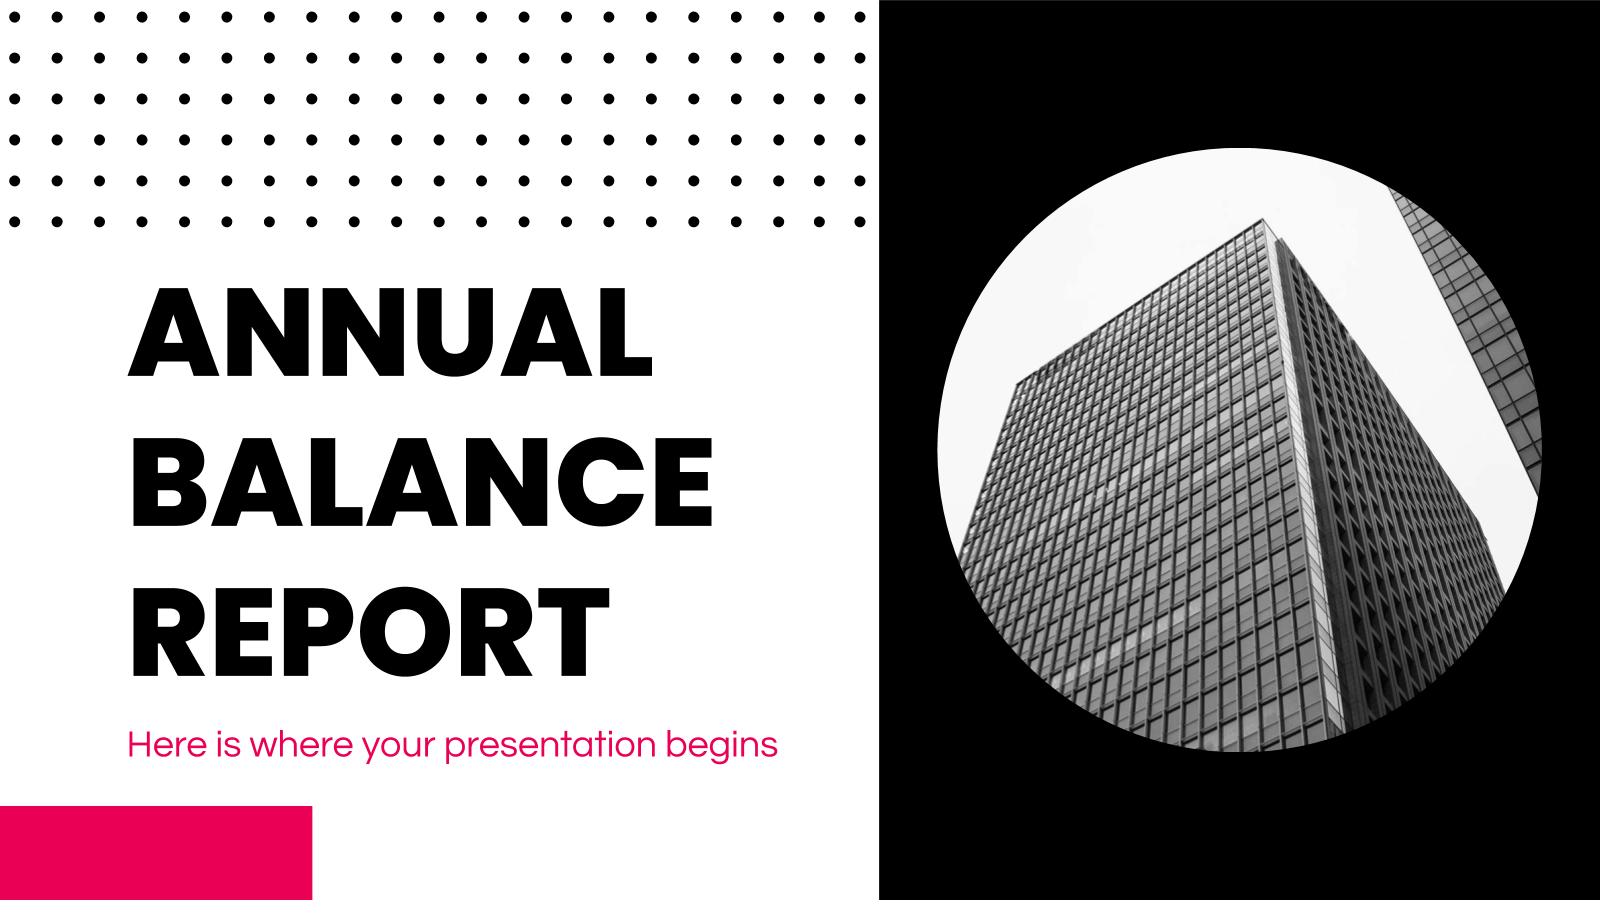 Annual Balance Report presentation template